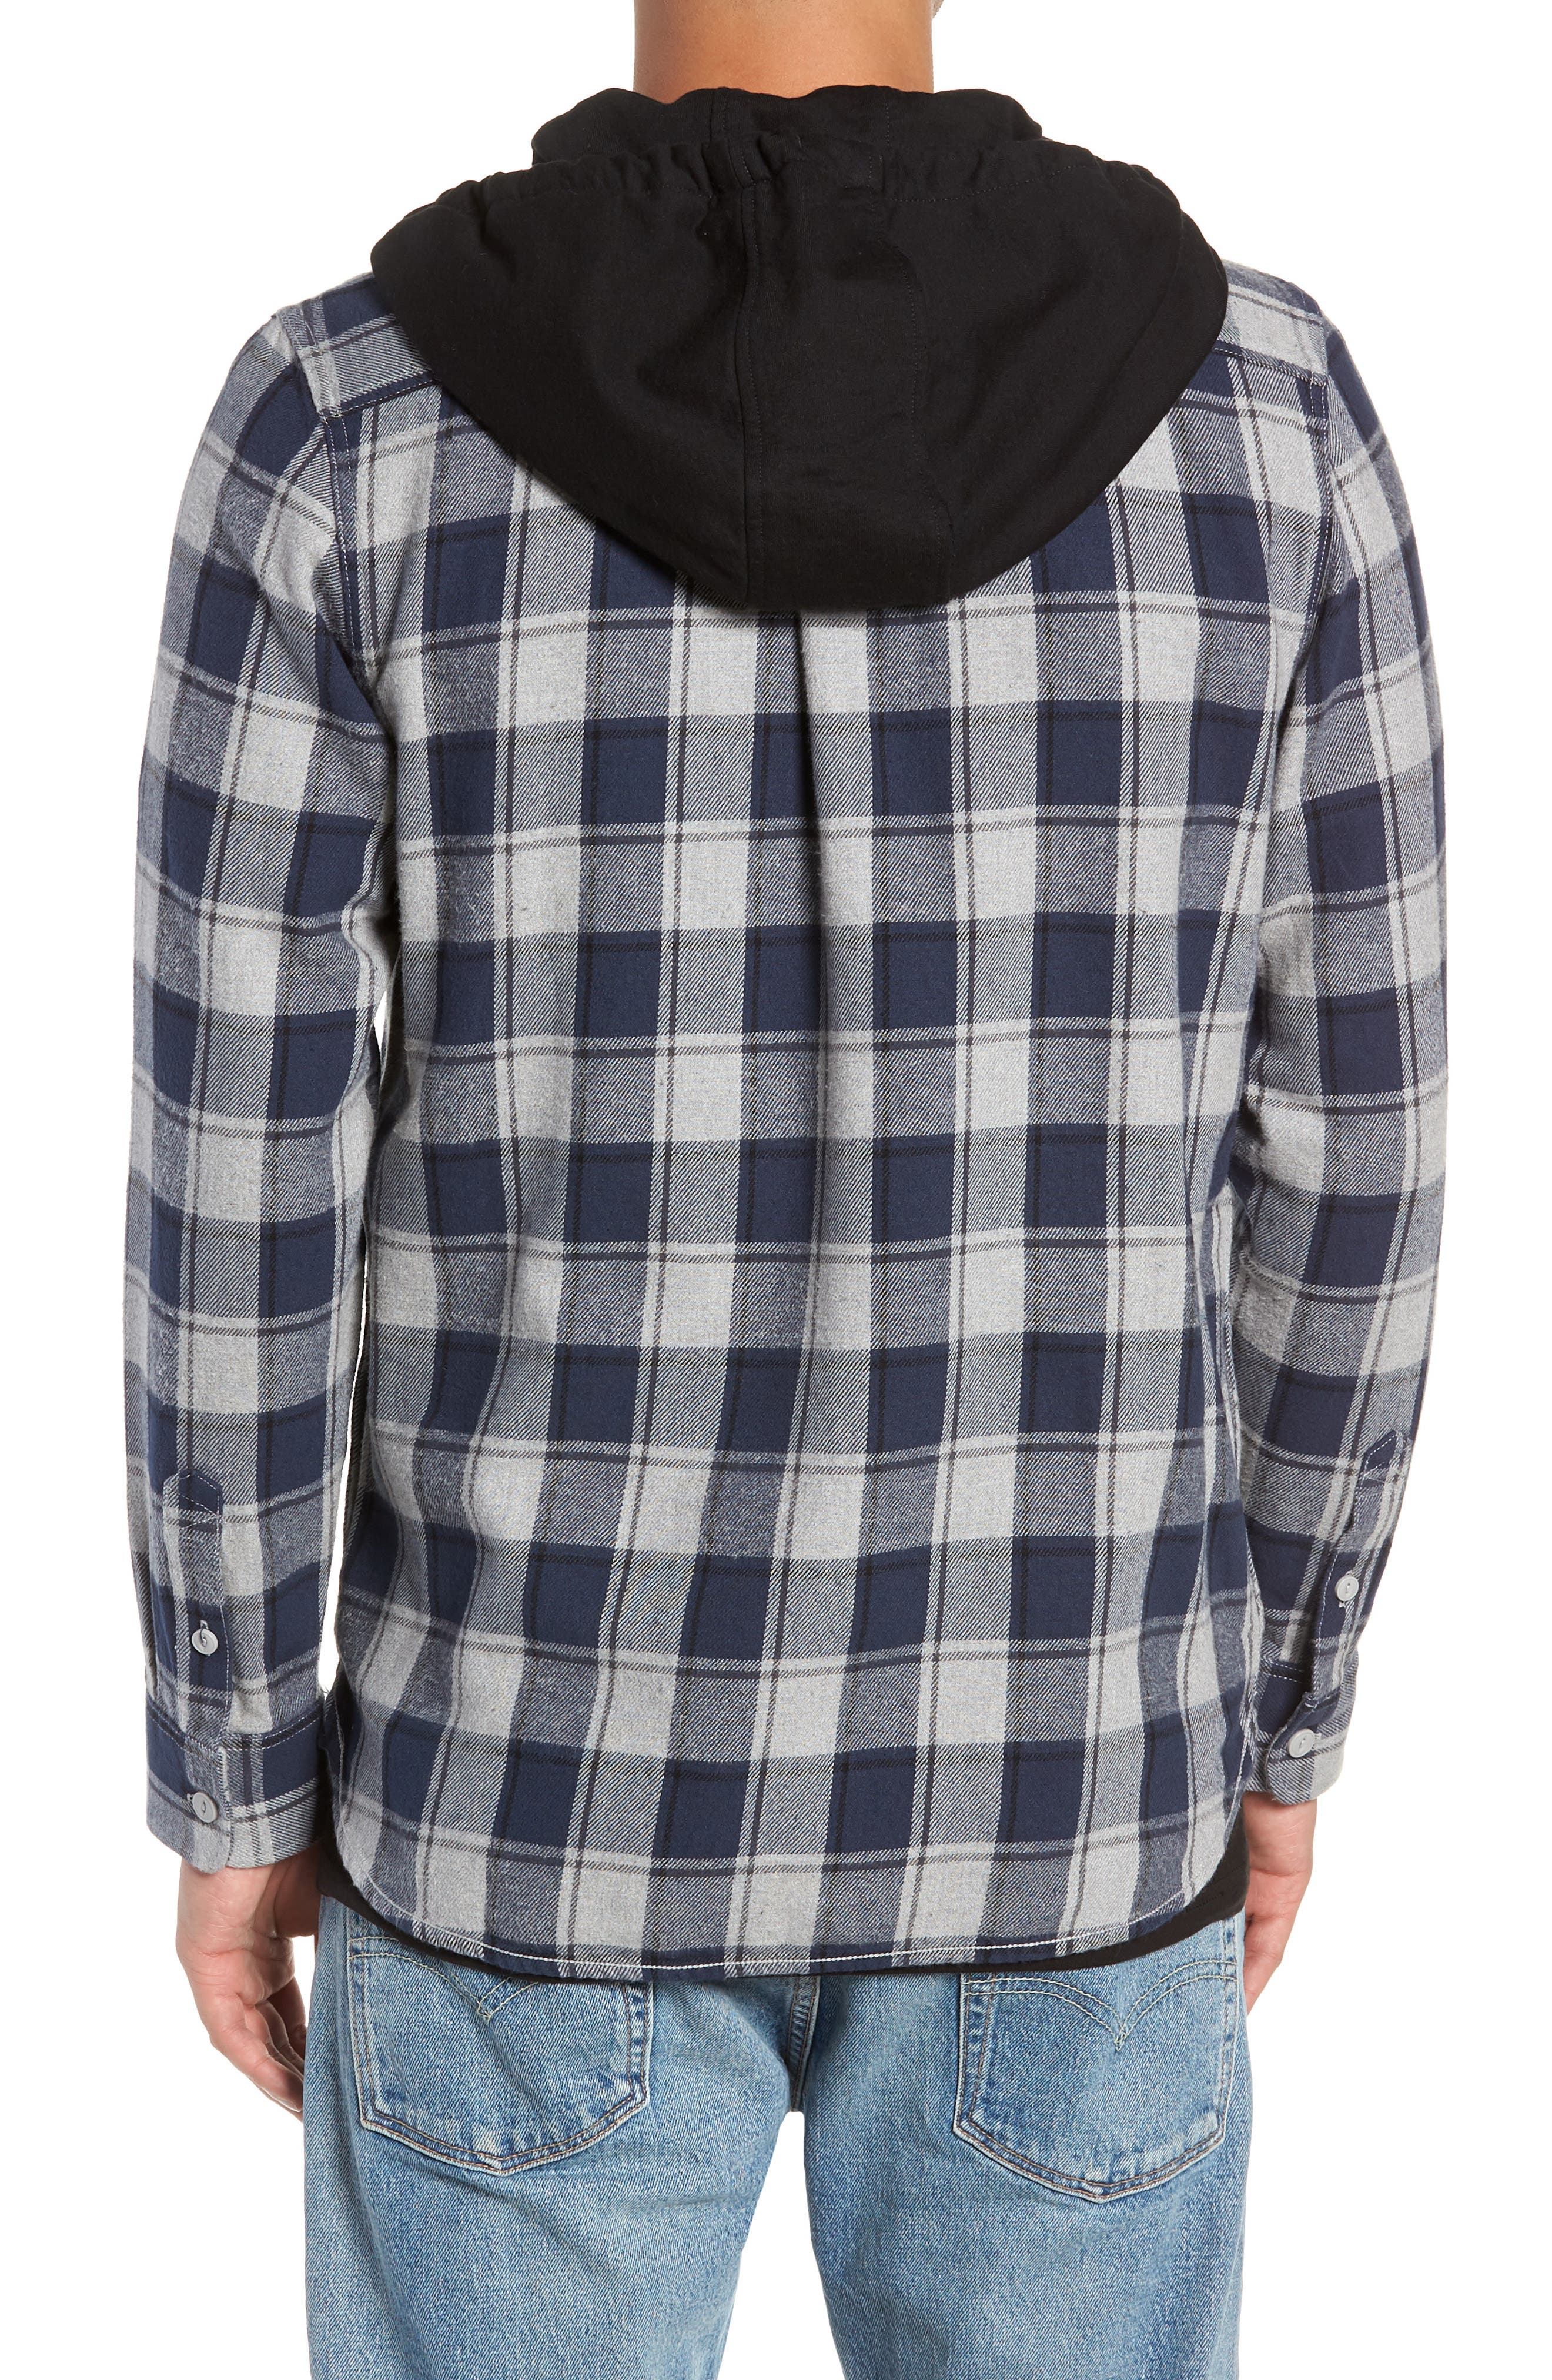 Lopes Hooded Plaid Flannel Jacket,                             Alternate thumbnail 2, color,                             DRESS BLUES/ GREY HEATHER